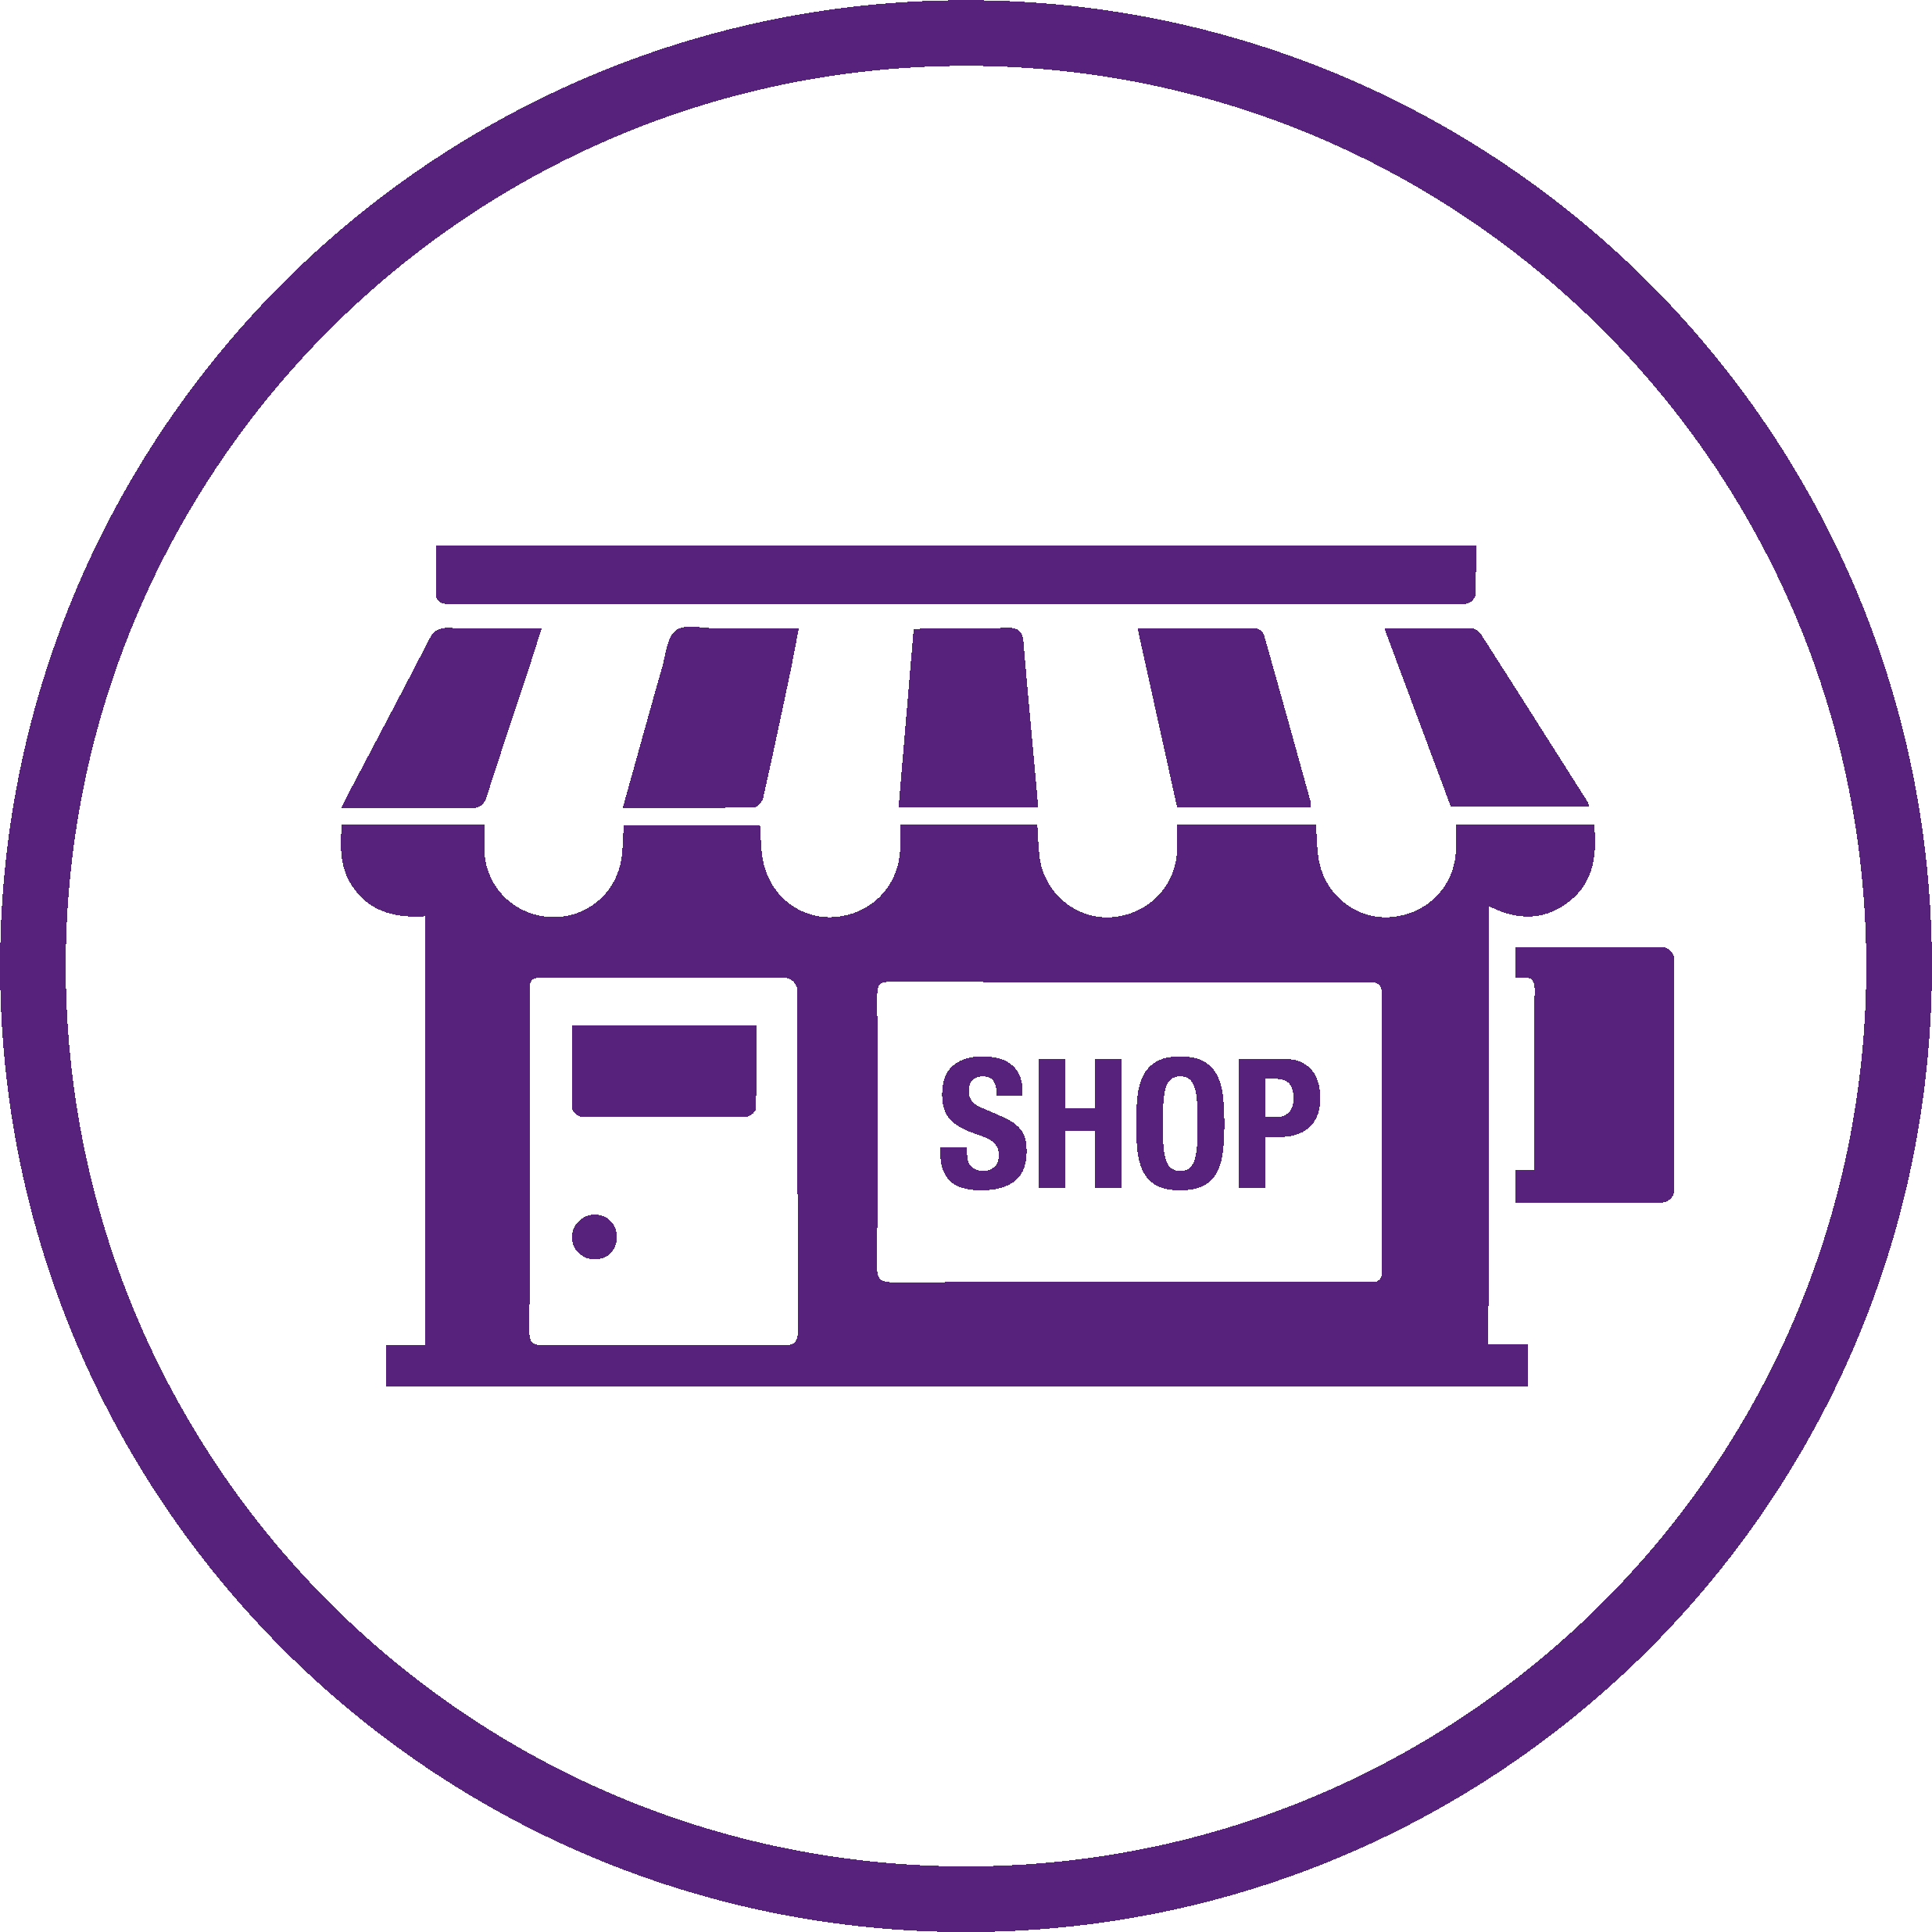 purple logo of a shop